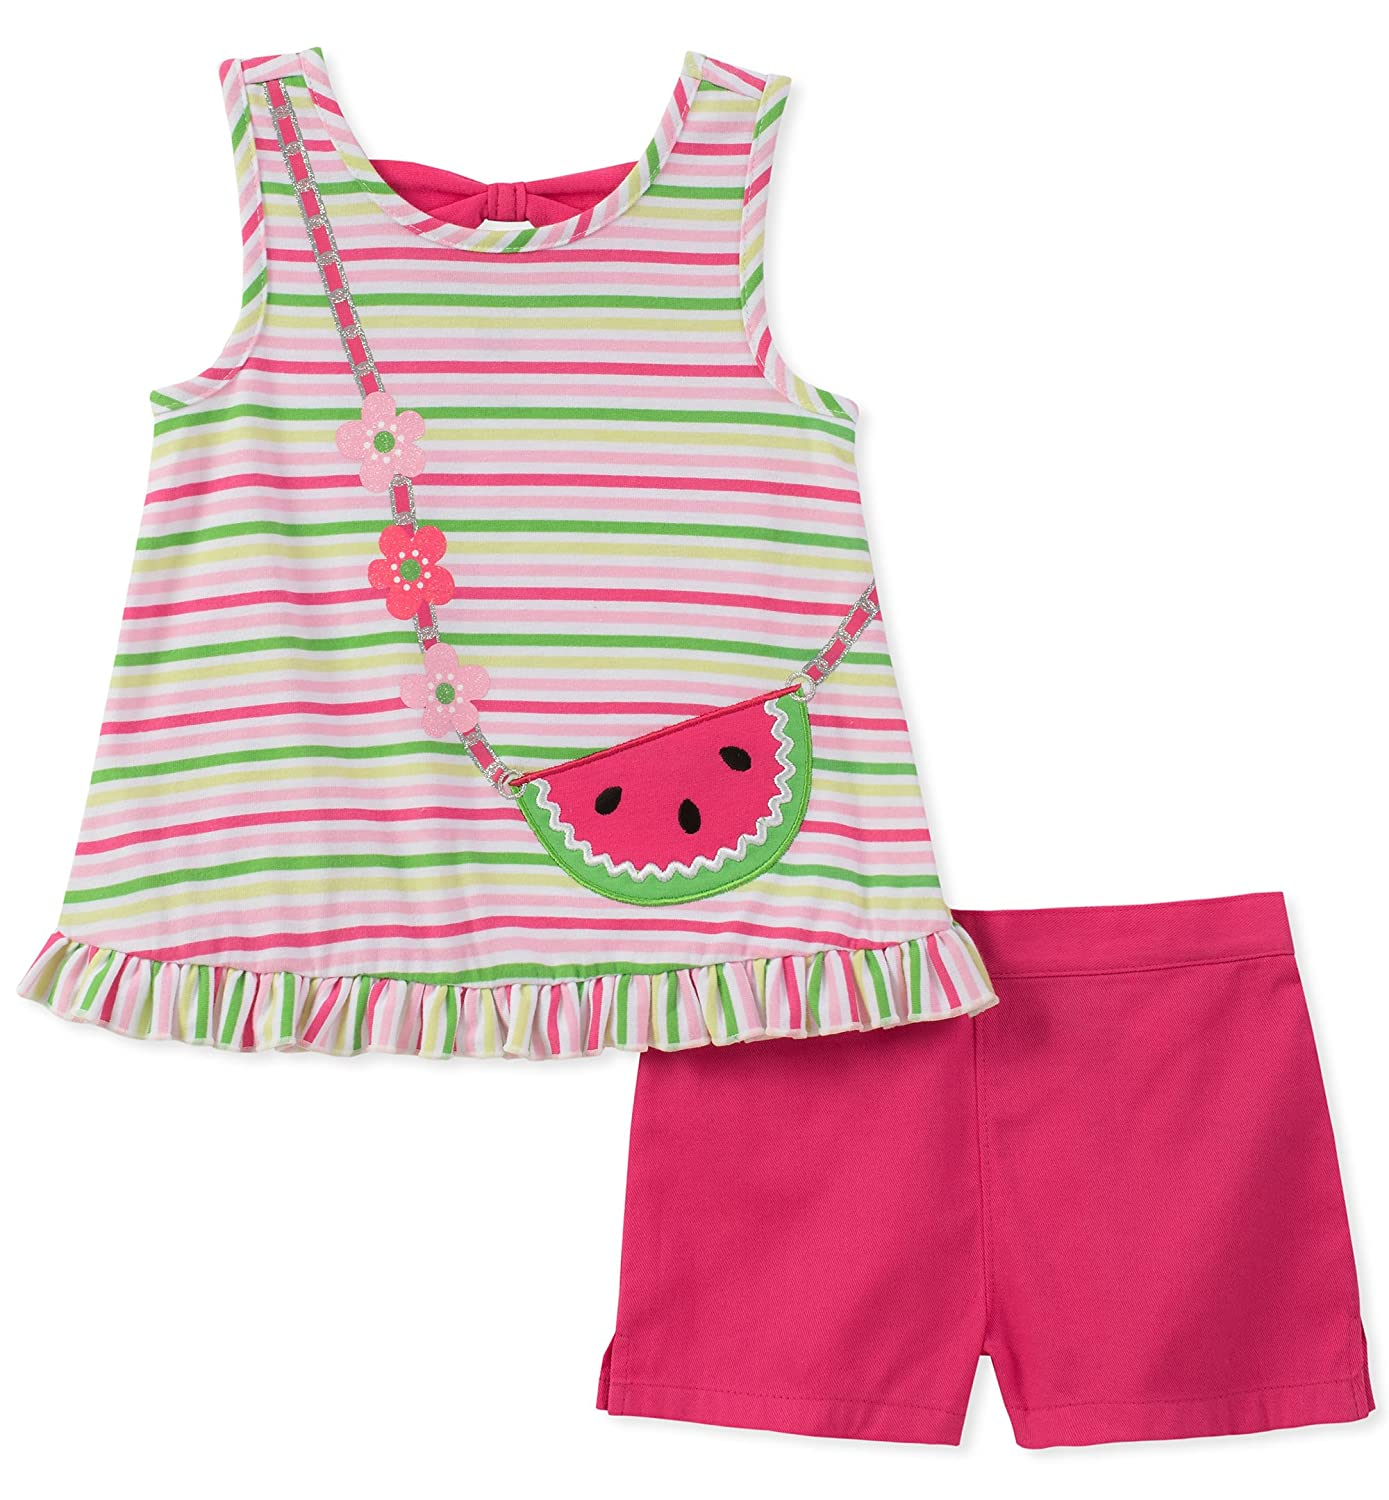 Kids Headquarters Girls Toddler 2 Pieces Shorts Set